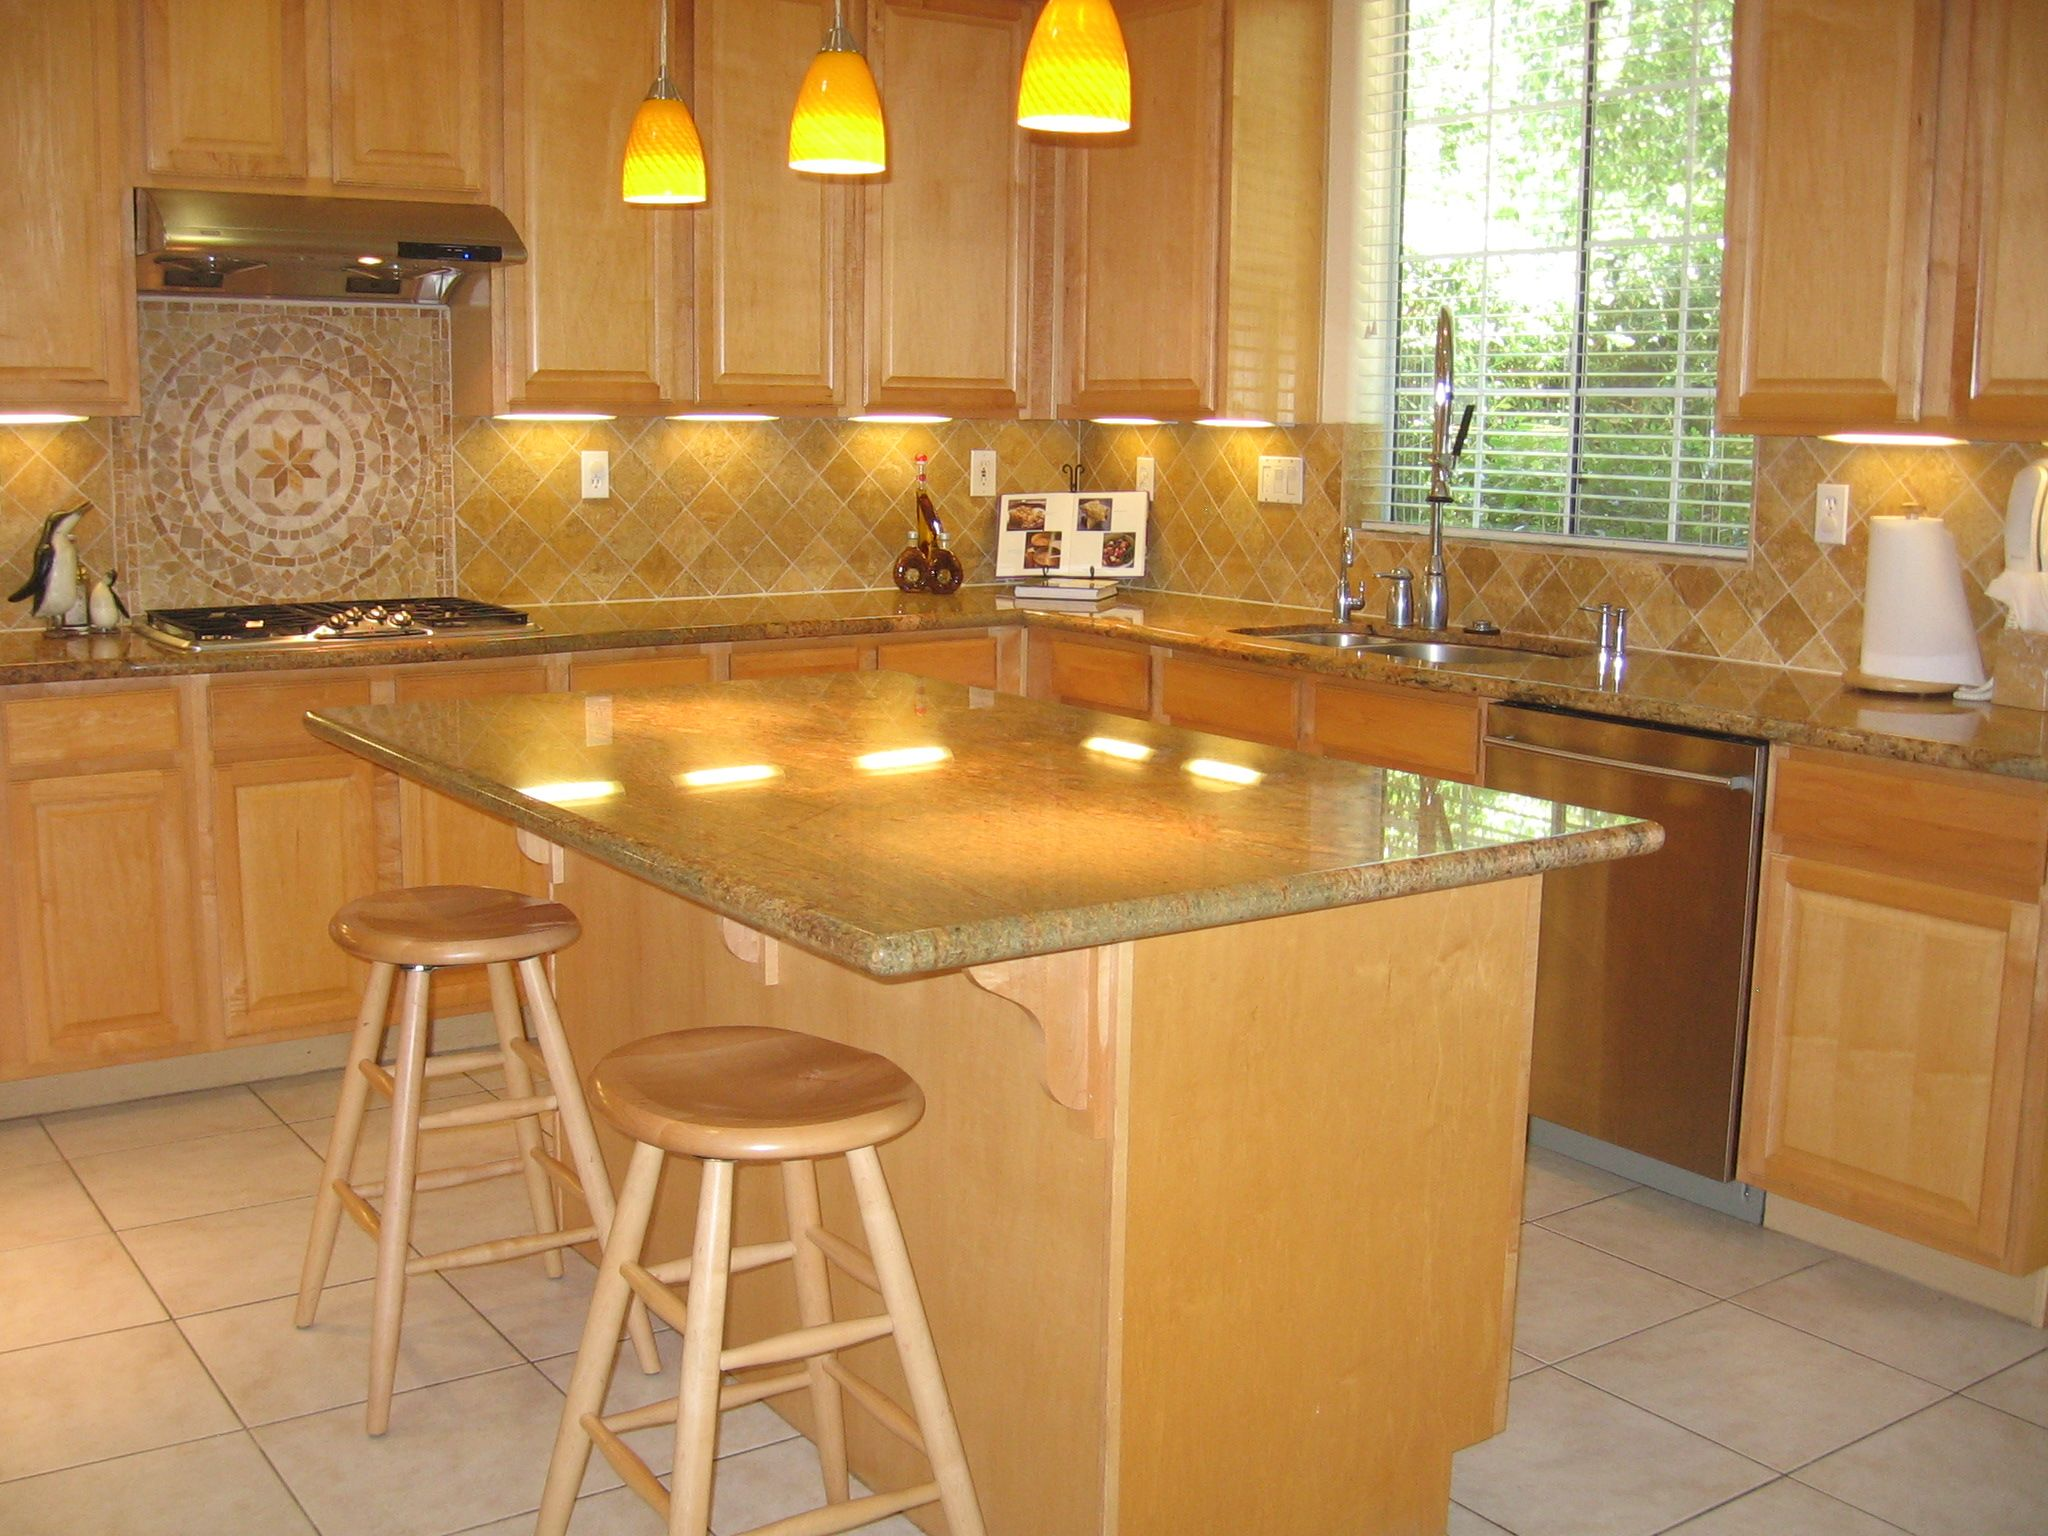 Uncategorized Maple Kitchen Countertops each slab has its own character kitchens pinterest granite countertops and countertops